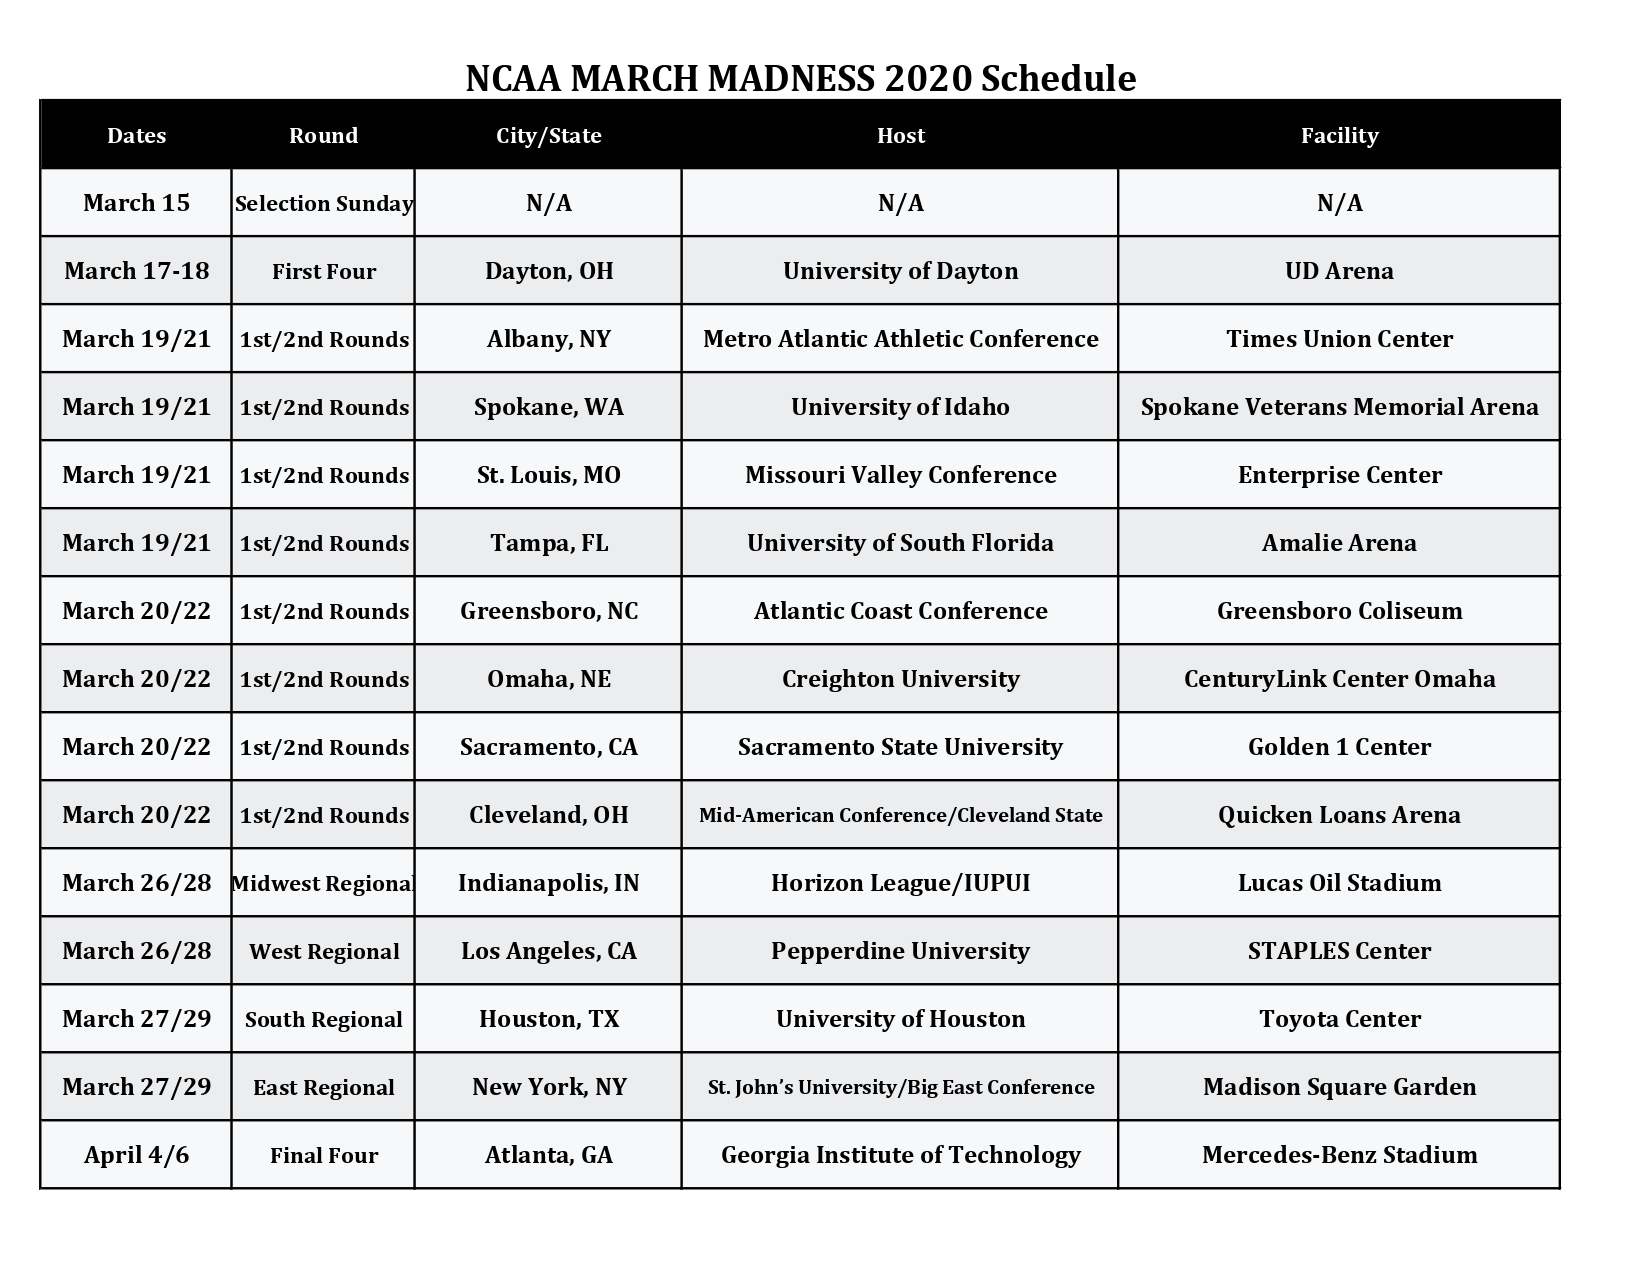 Printable March Madness 2020 schedule